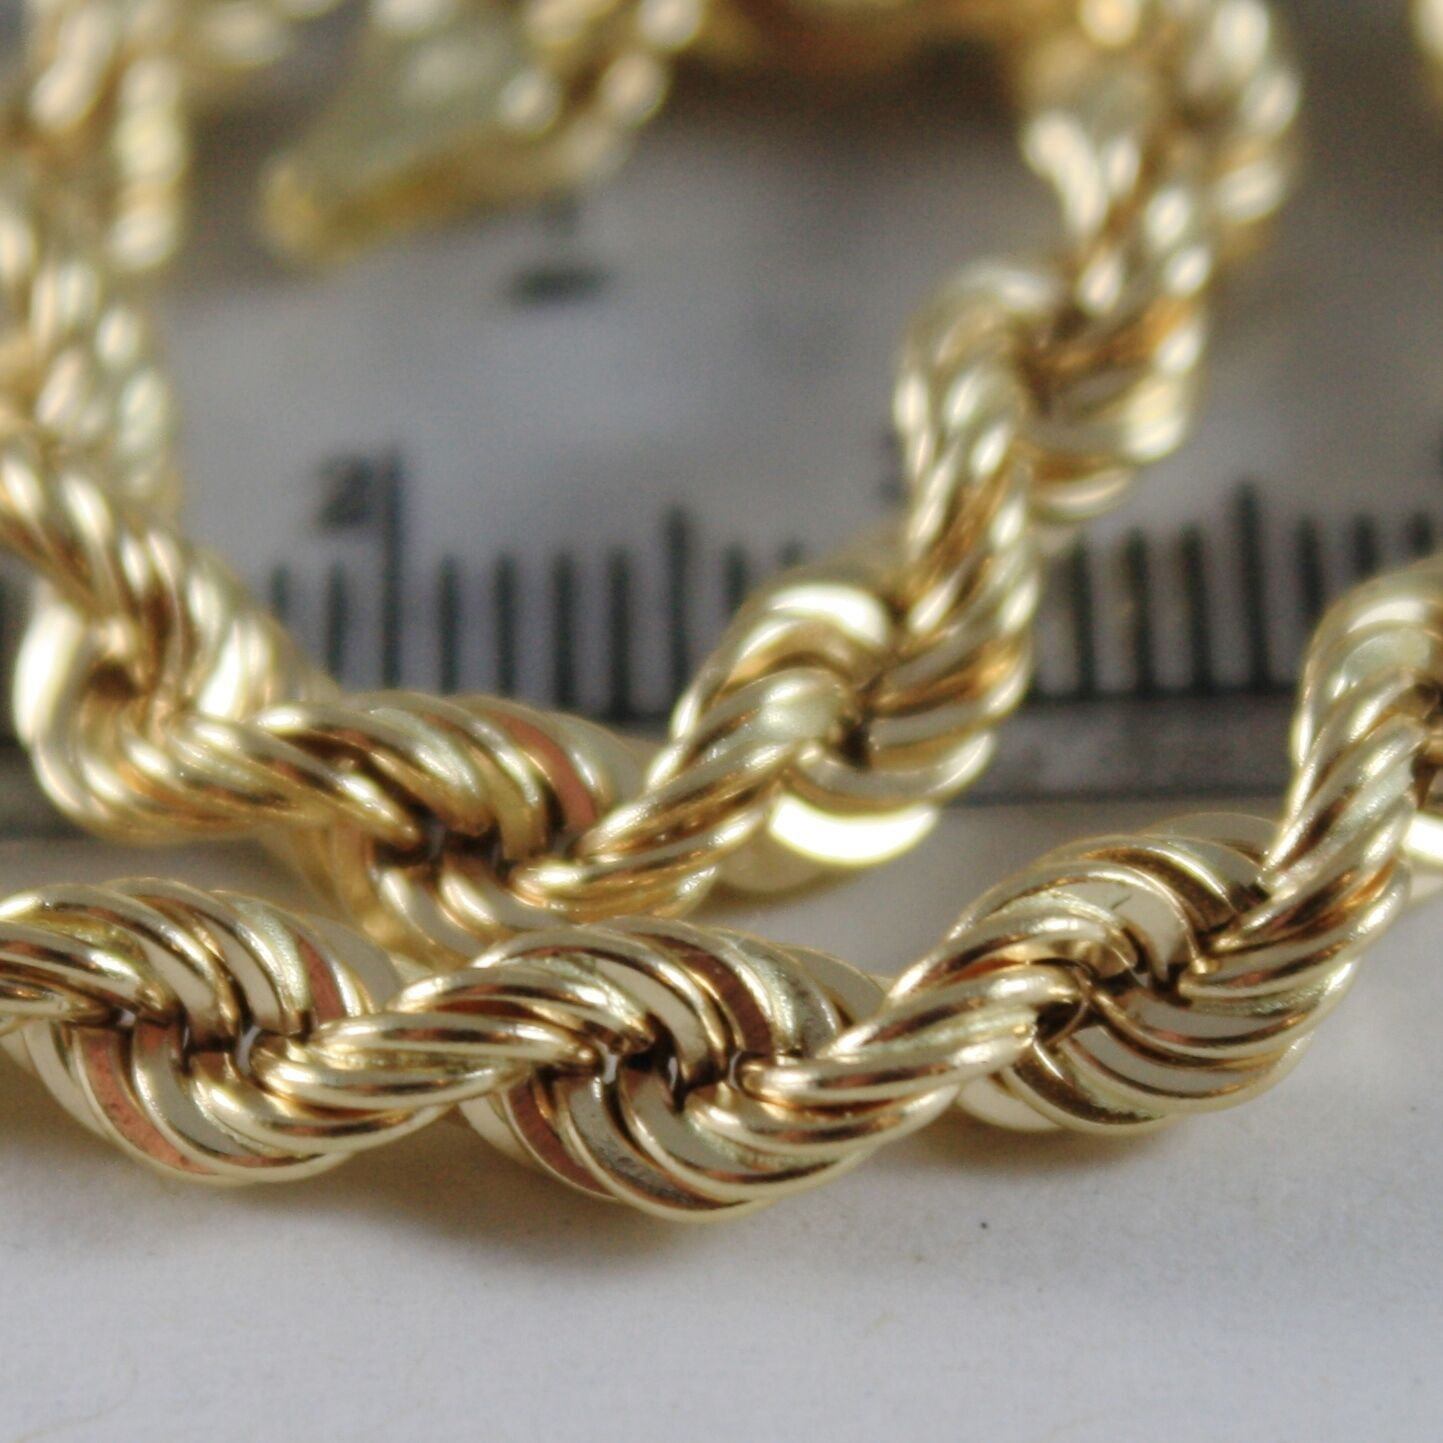 18K YELLOW GOLD BRACELET BIG 5 MM BRAID ROPE LINK, 7.50 INCH LONG, MADE IN ITALY